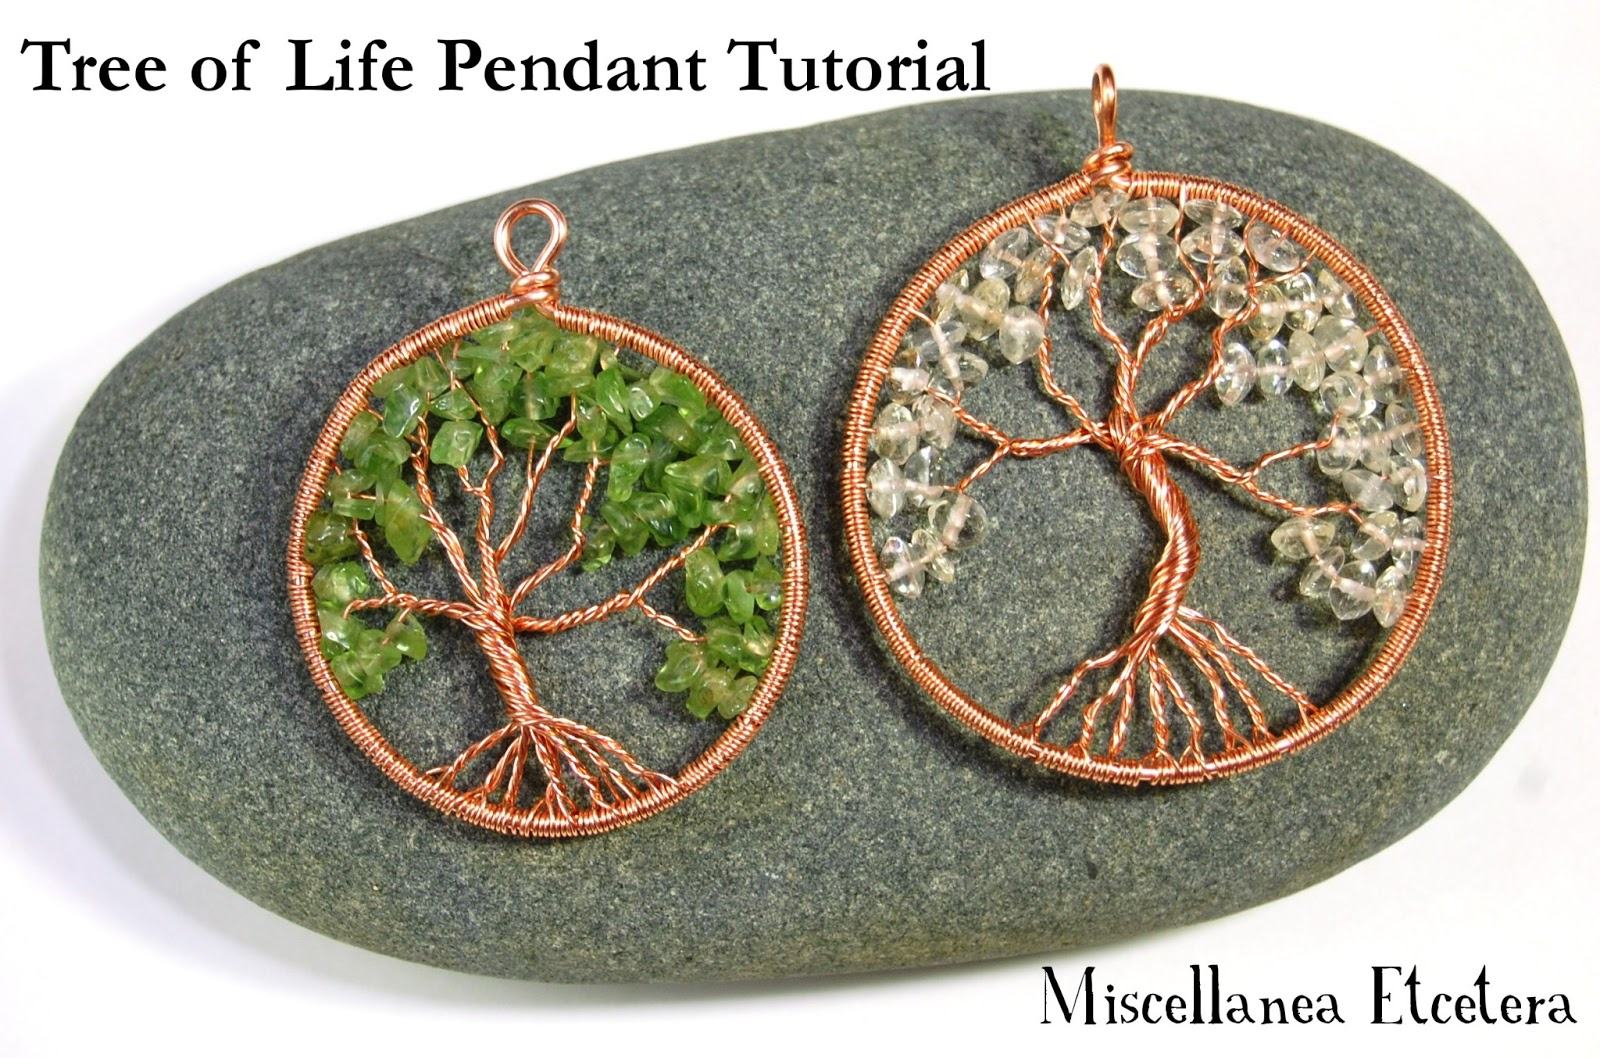 Miscellanea etcetera jewelry tutorial tree of life pendant for What is the meaning of the tree of life jewelry